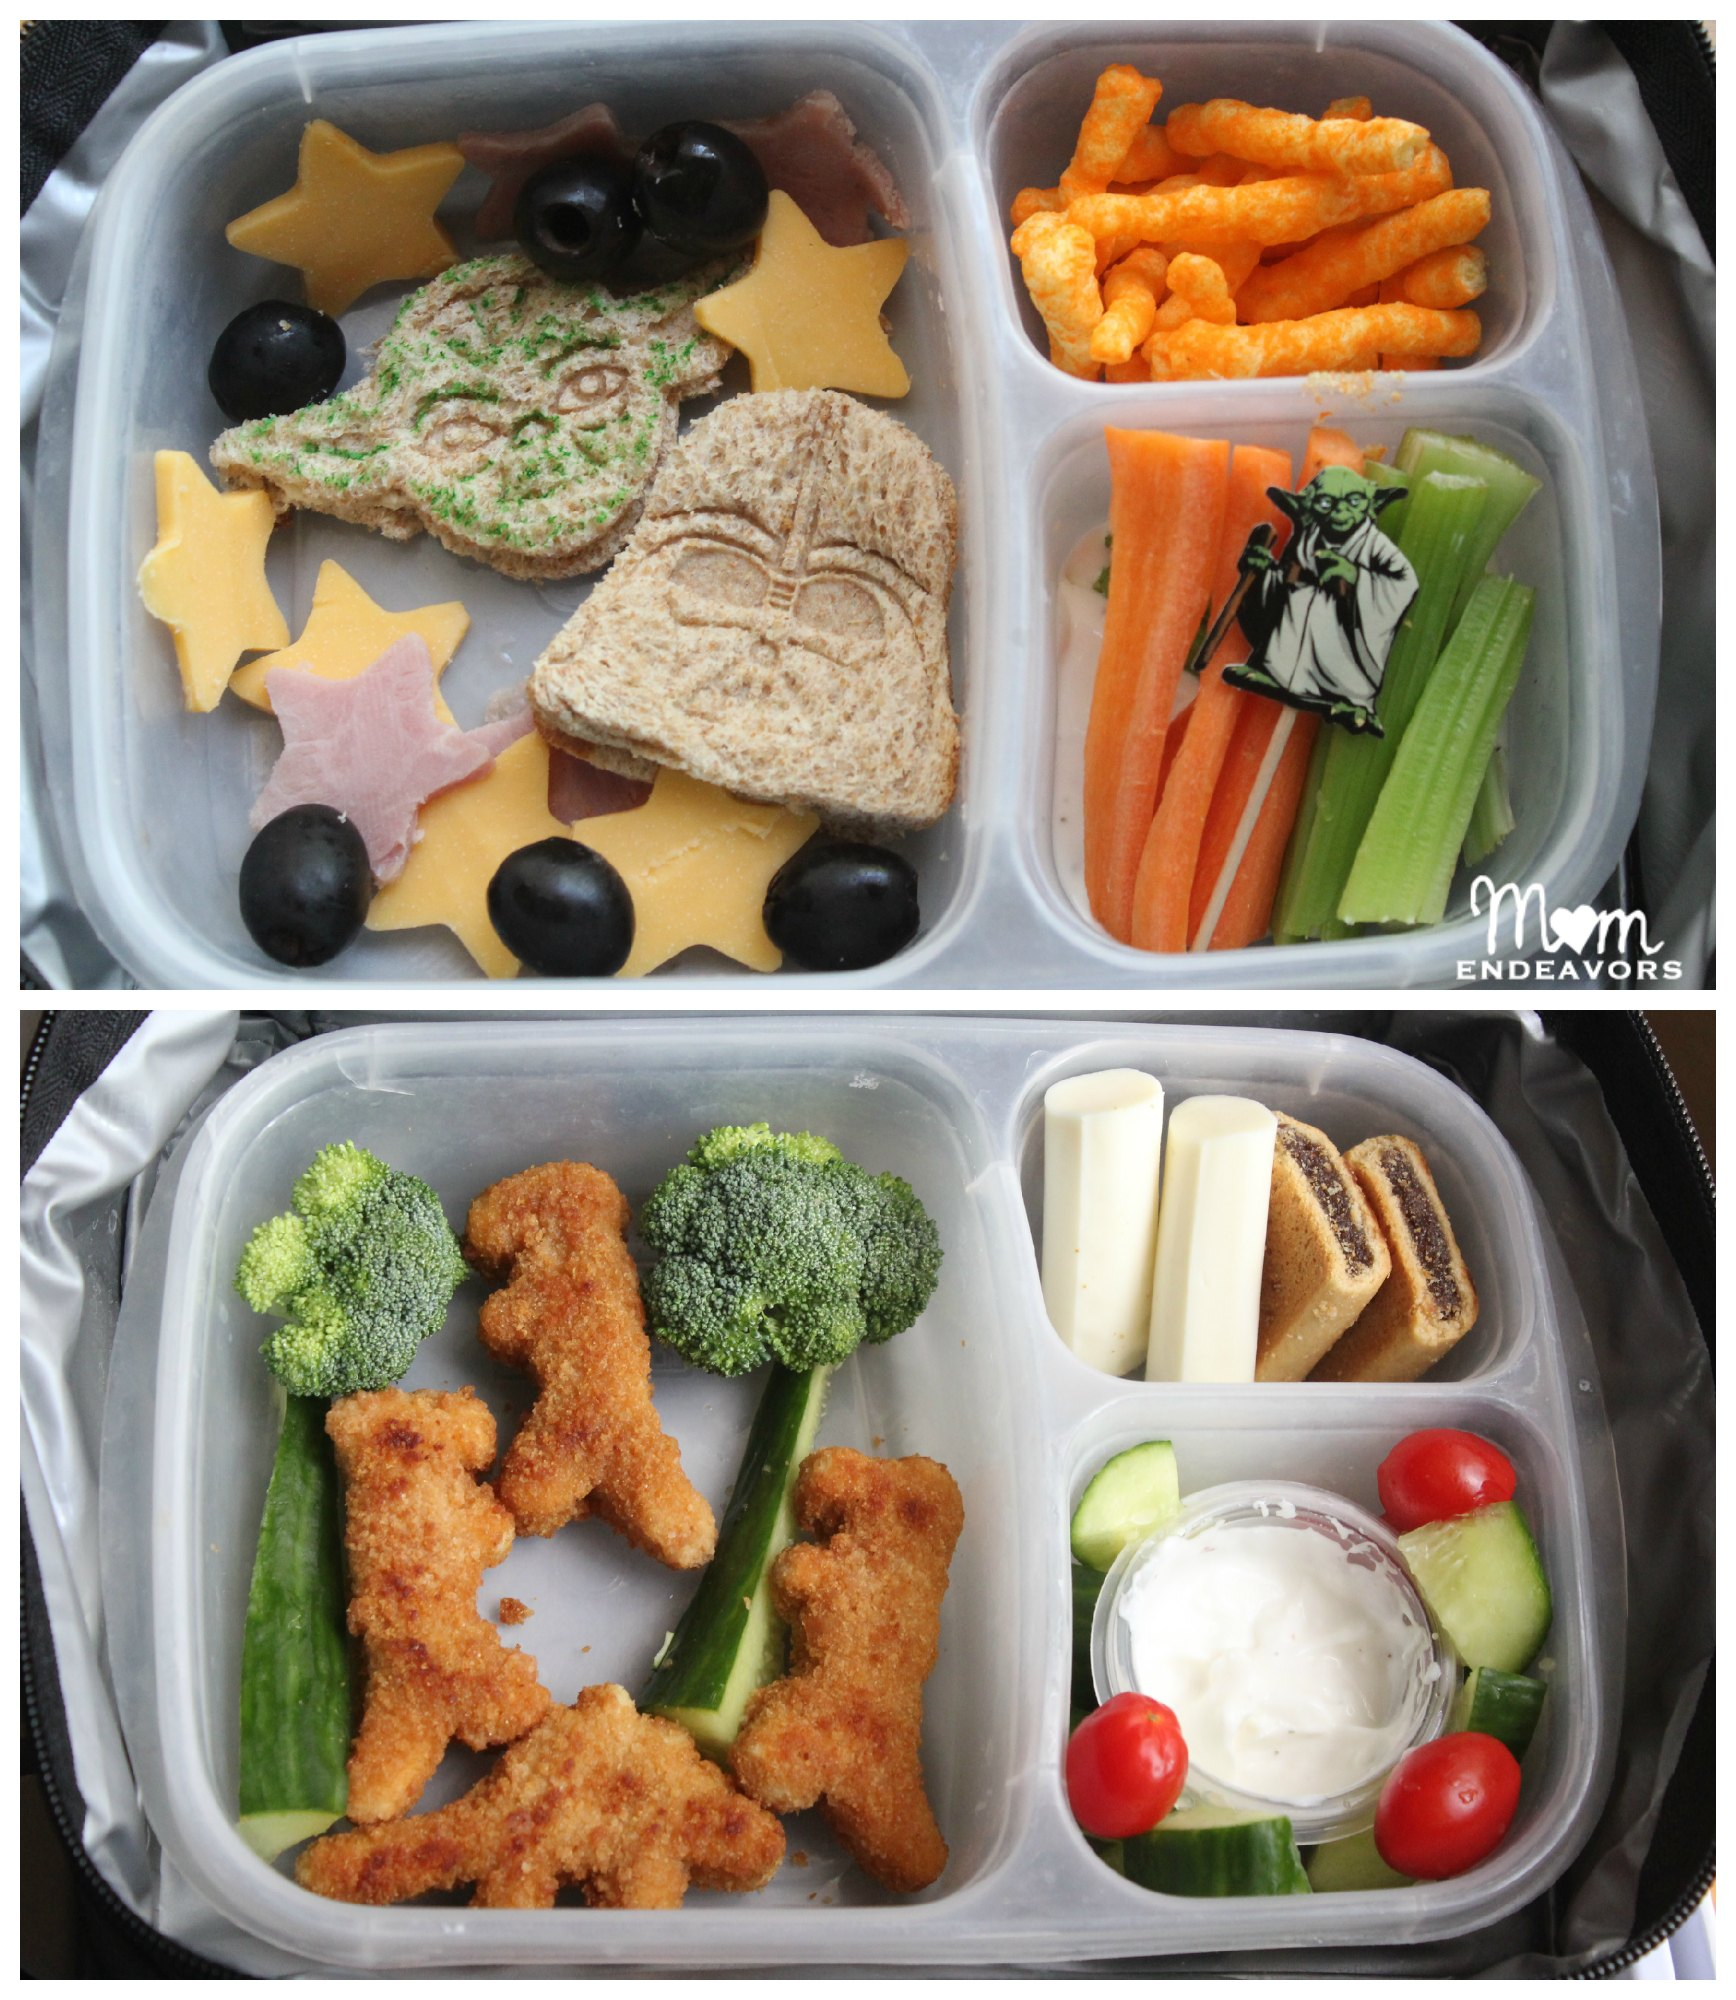 Oct 31, · Whether it is back to school or mid-year, parents are always looking for new and creative school lunch ideas. Maybe you are in a rut or just looking for some creative healthy options that your kids will actually eat and not toss in the garbage!